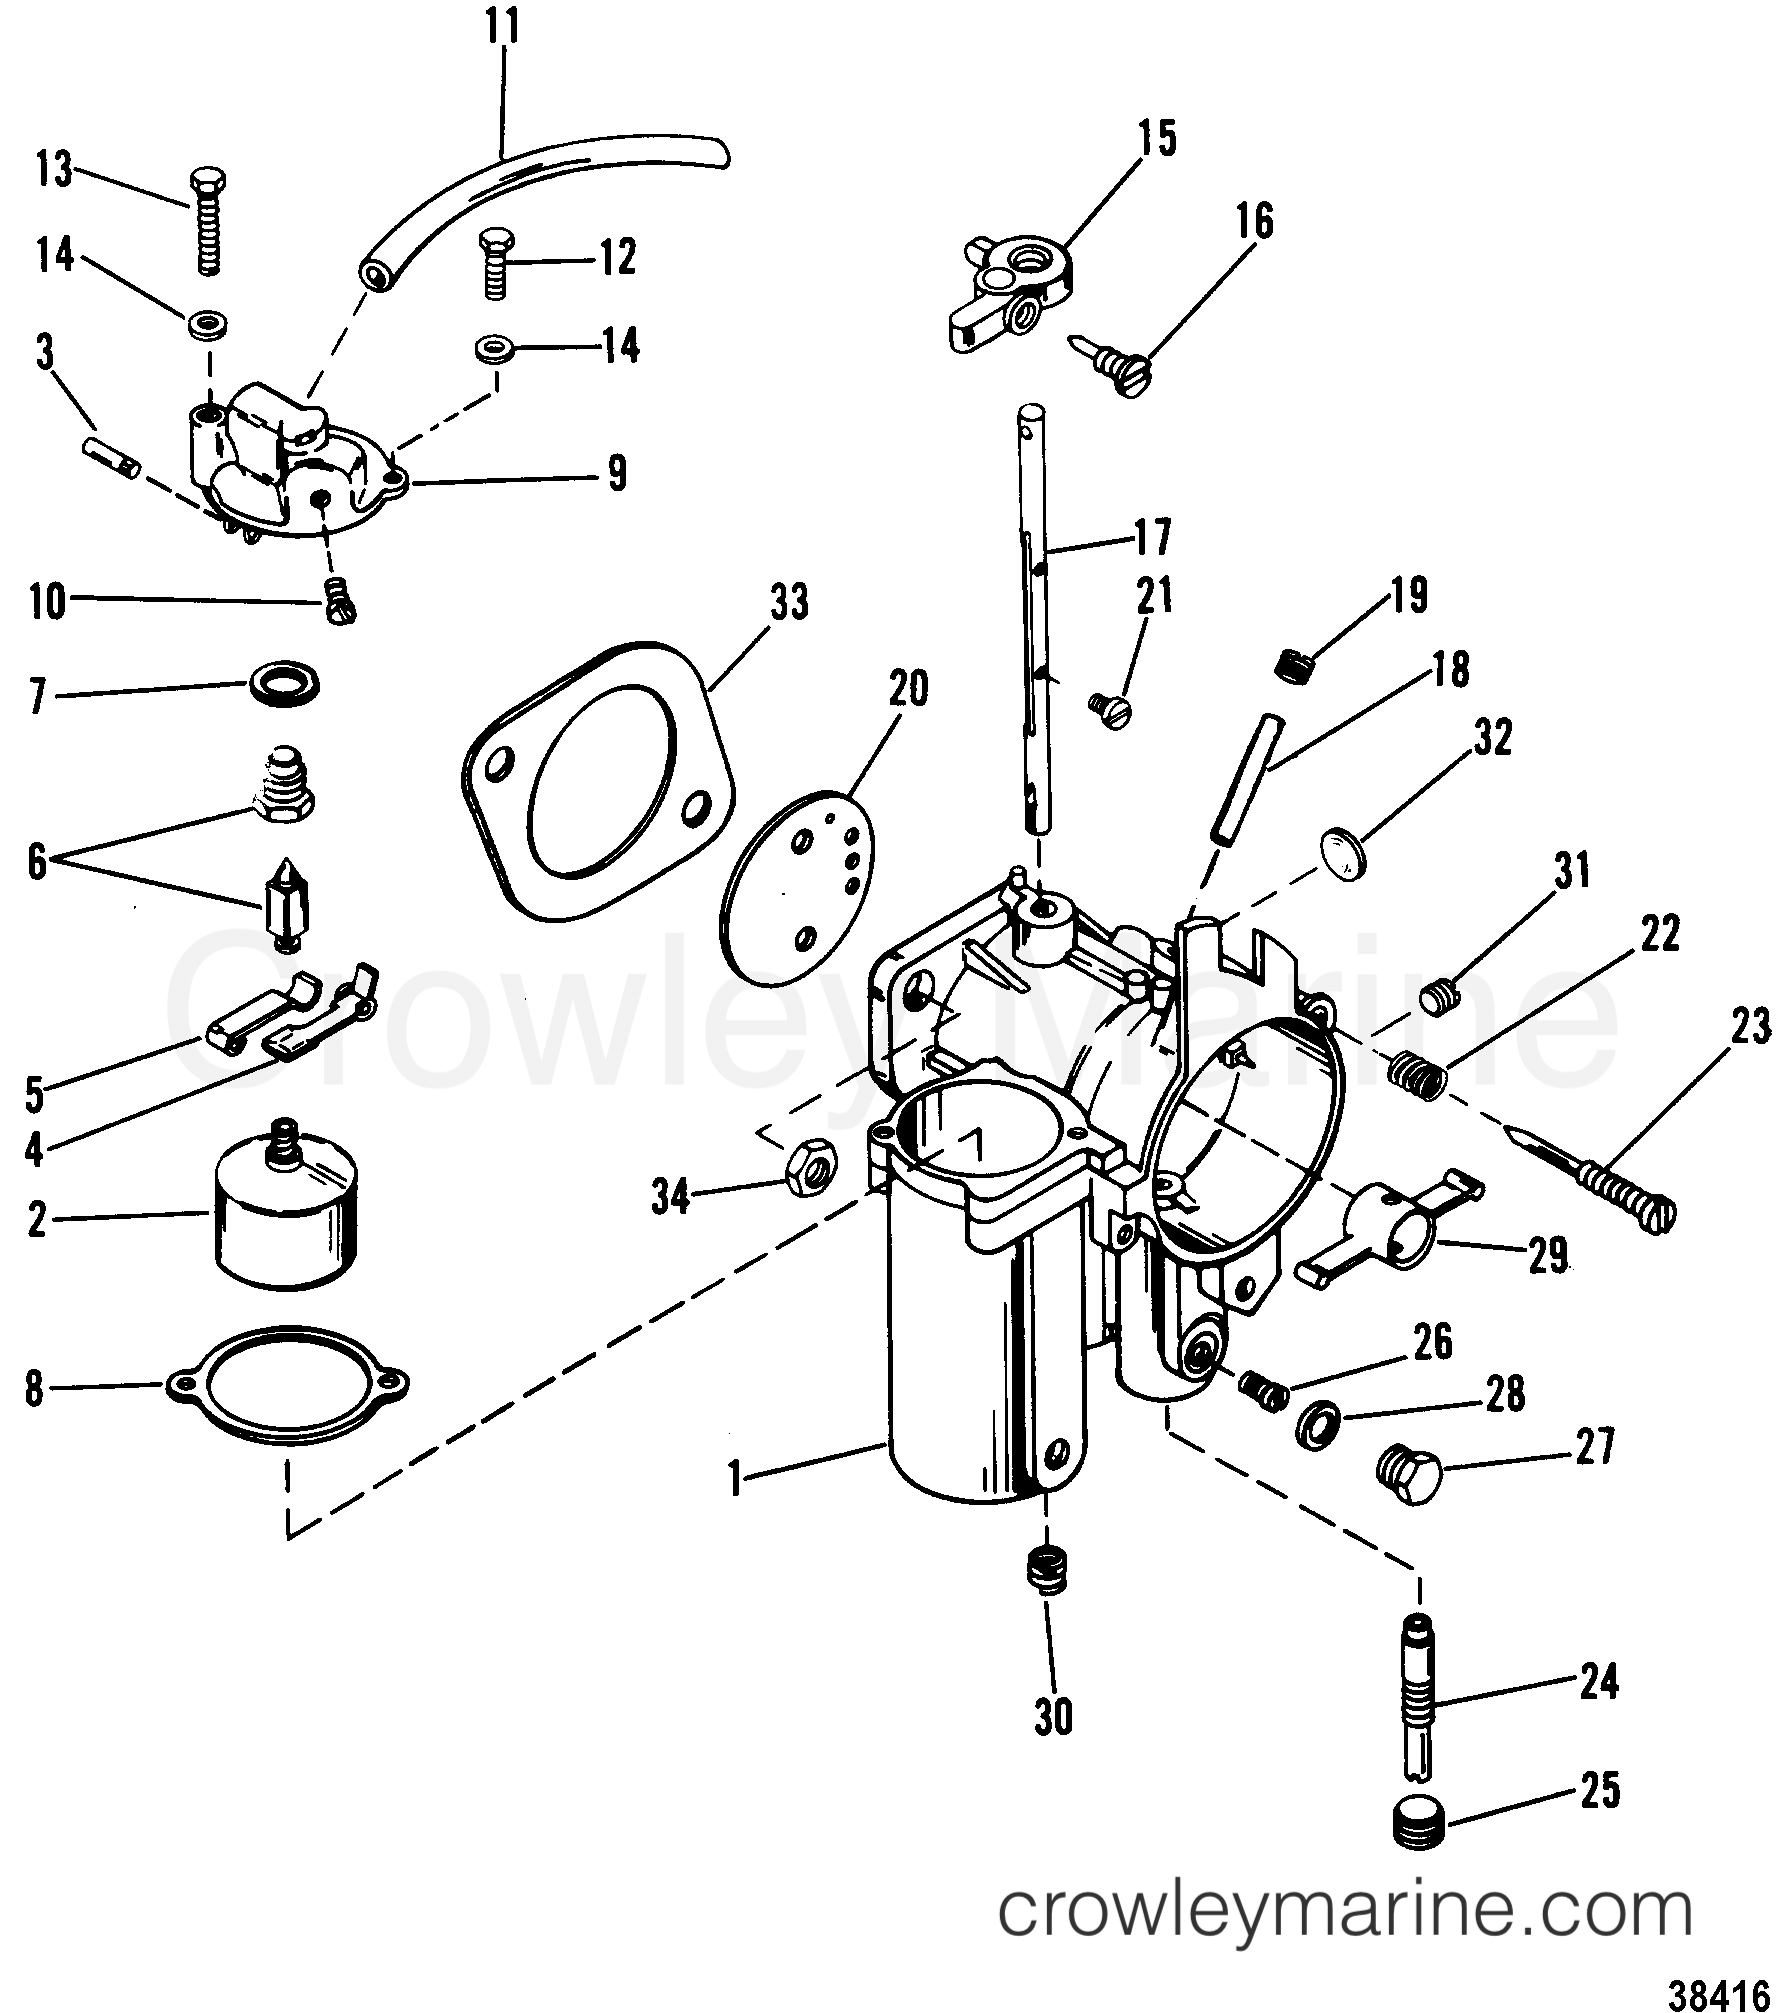 Mercury Outboard Motor Lower Unit Diagram